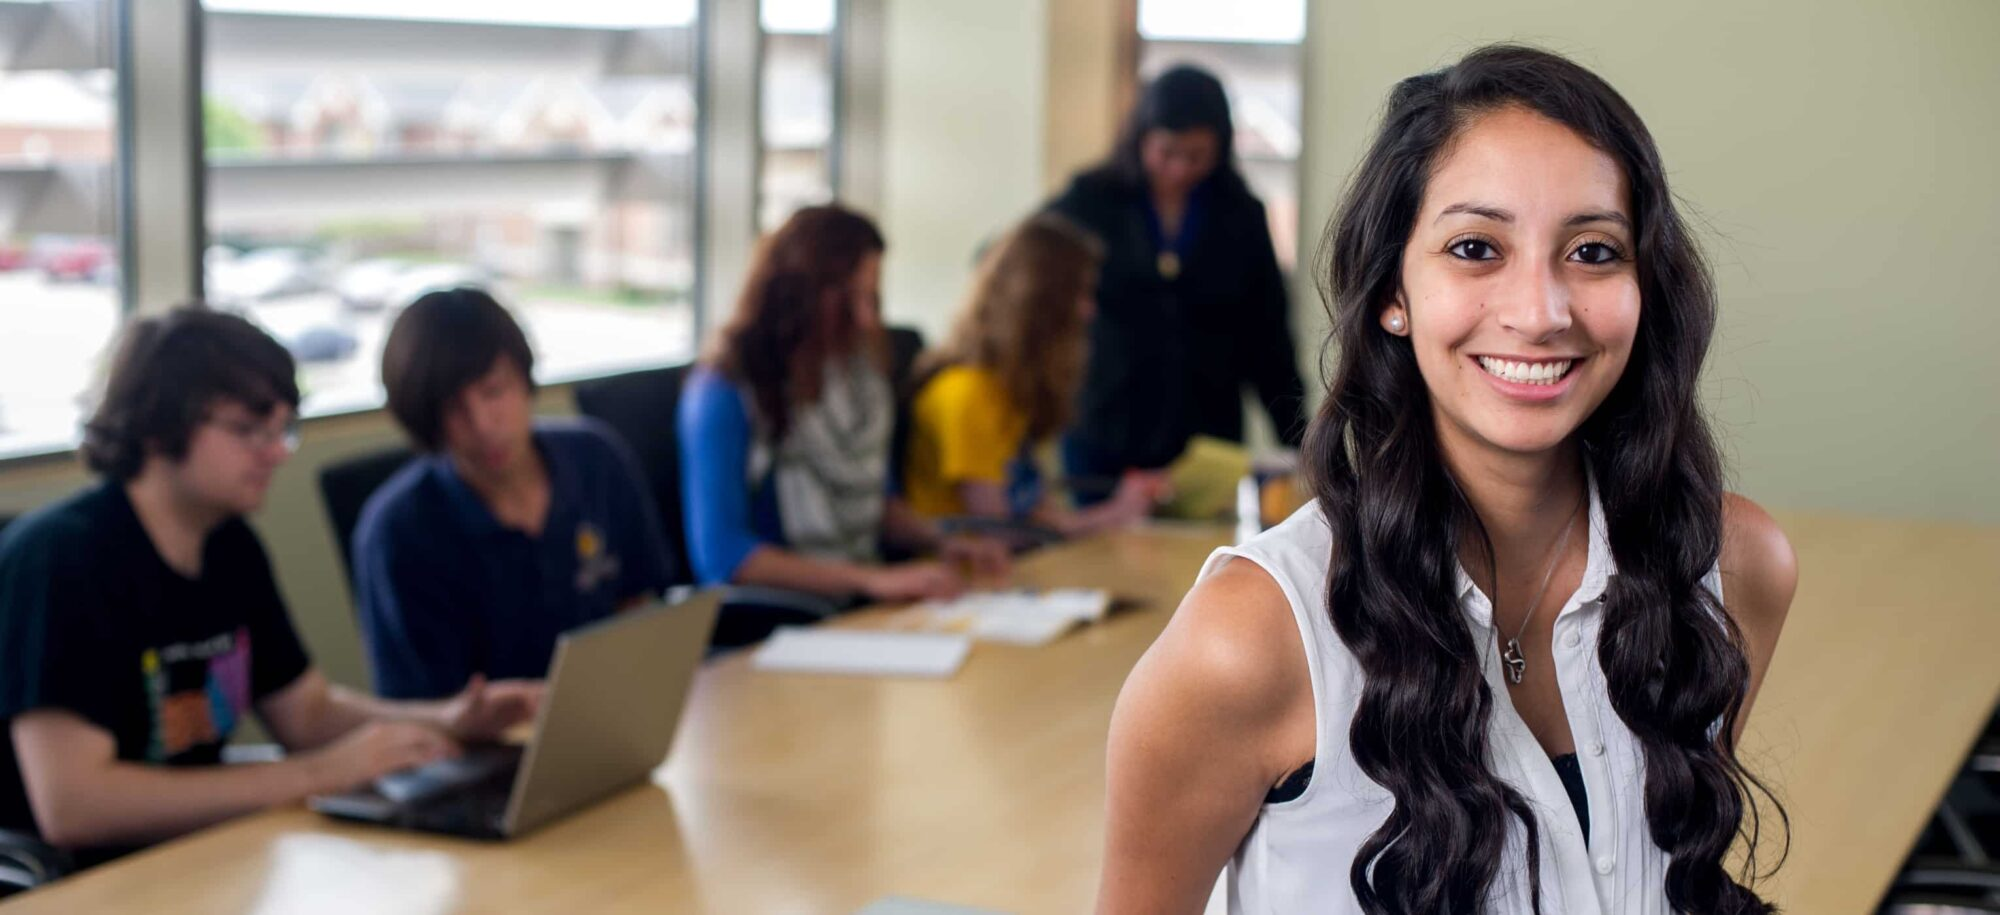 Business student smiling in front of classmates